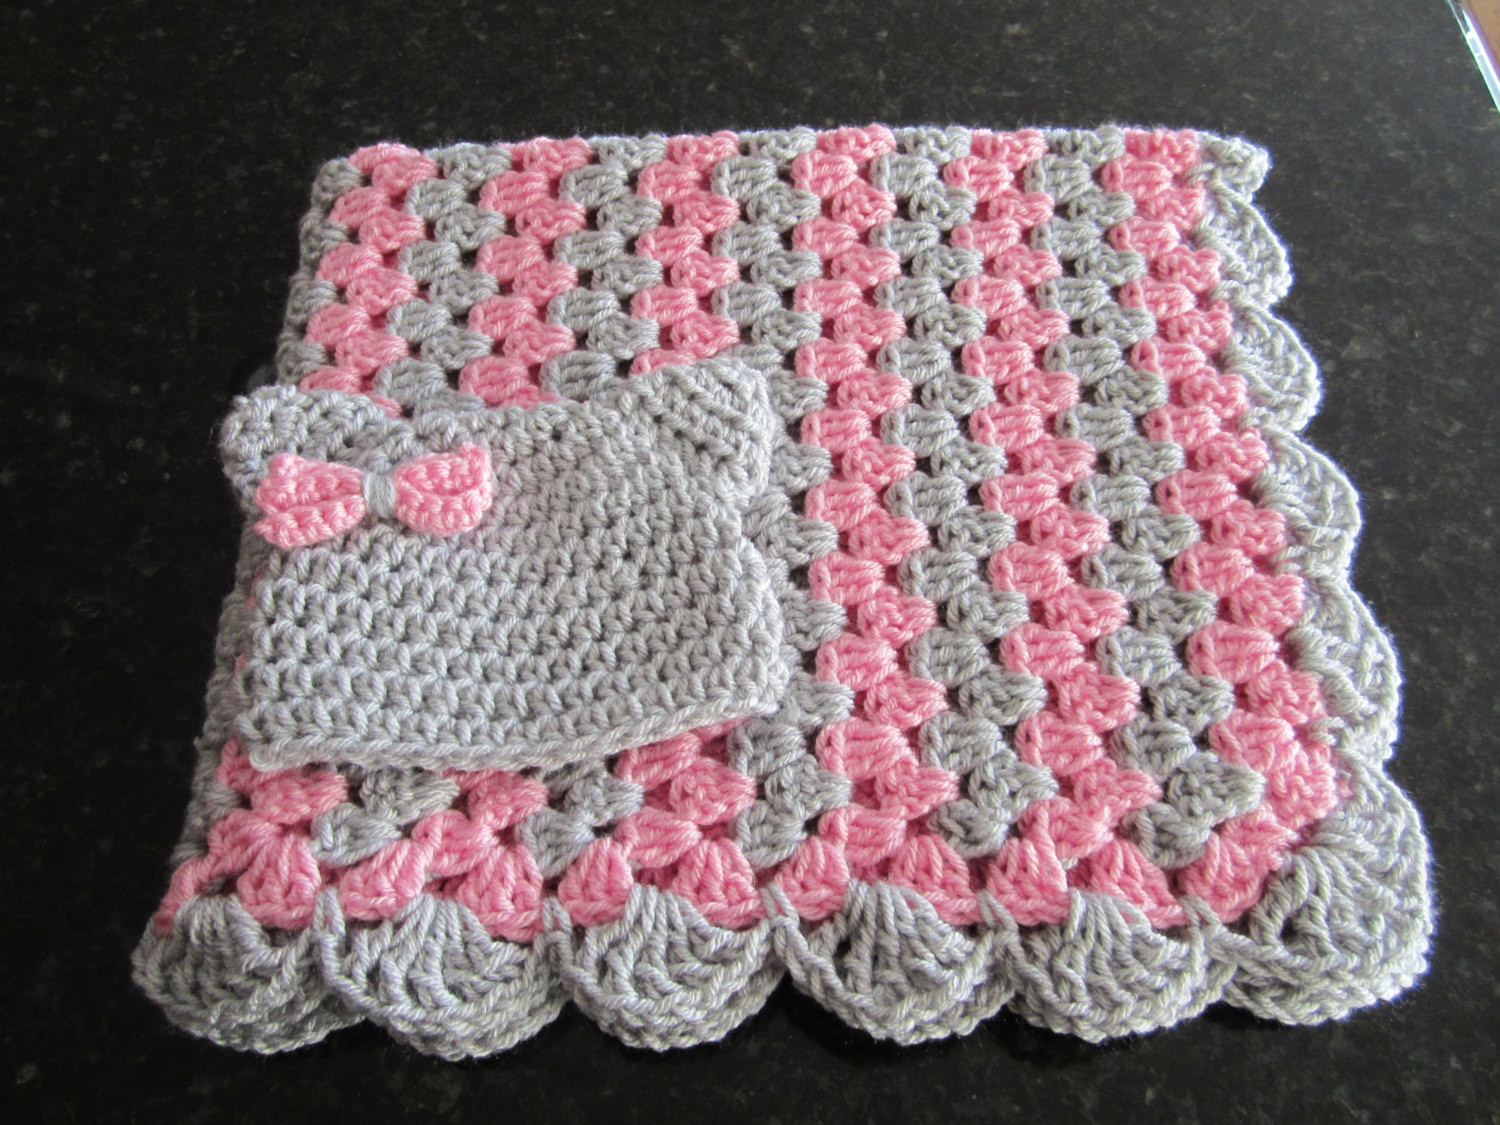 Blanket Crochet Pattern Free to Get You Warmer at Night Ba Girl Crochet Blanket Patterns Unique Free Crochet Patterns For